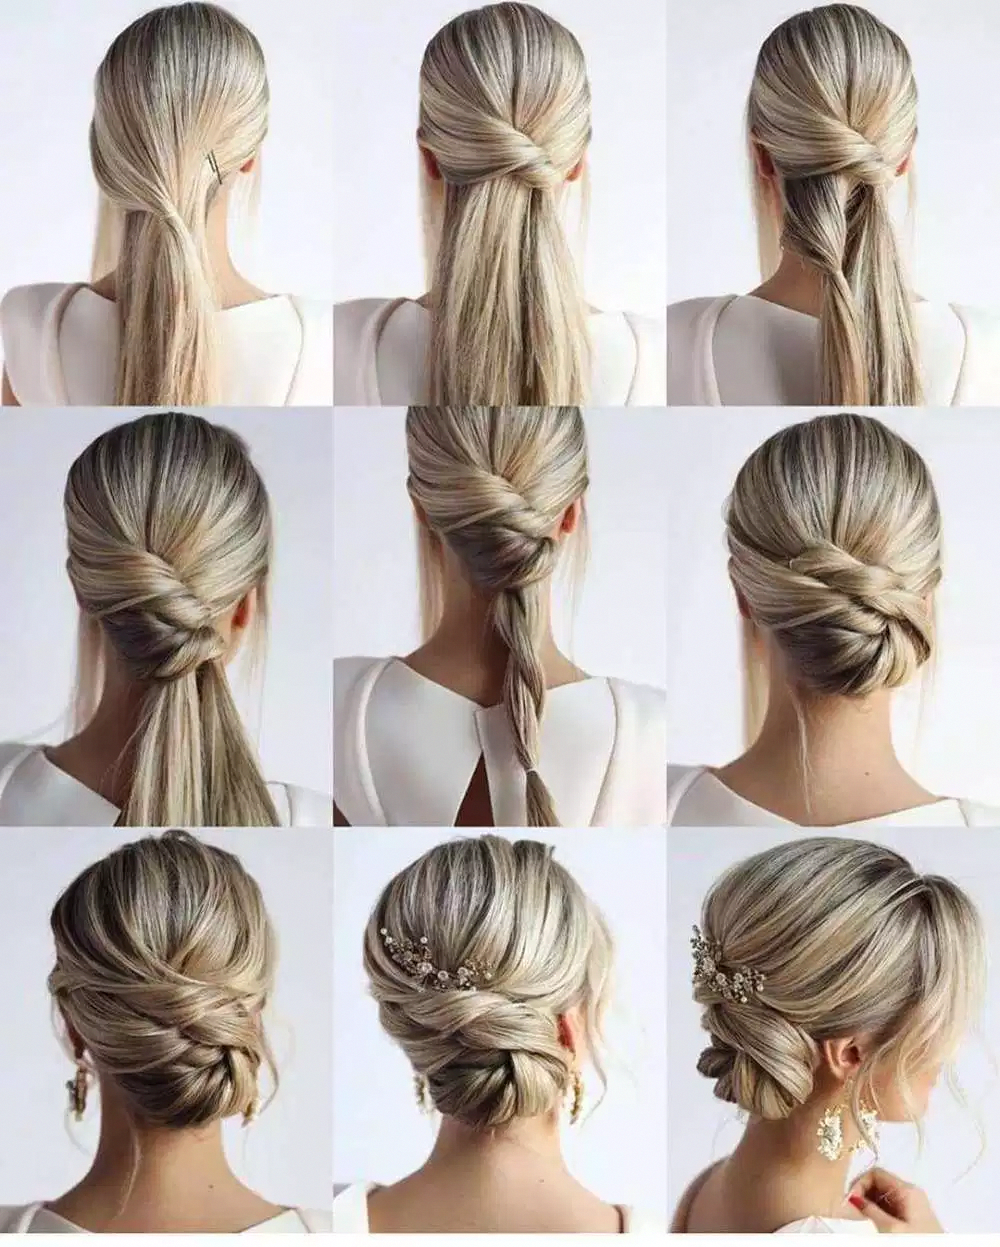 Pin On Wedding Hairstyles Updo